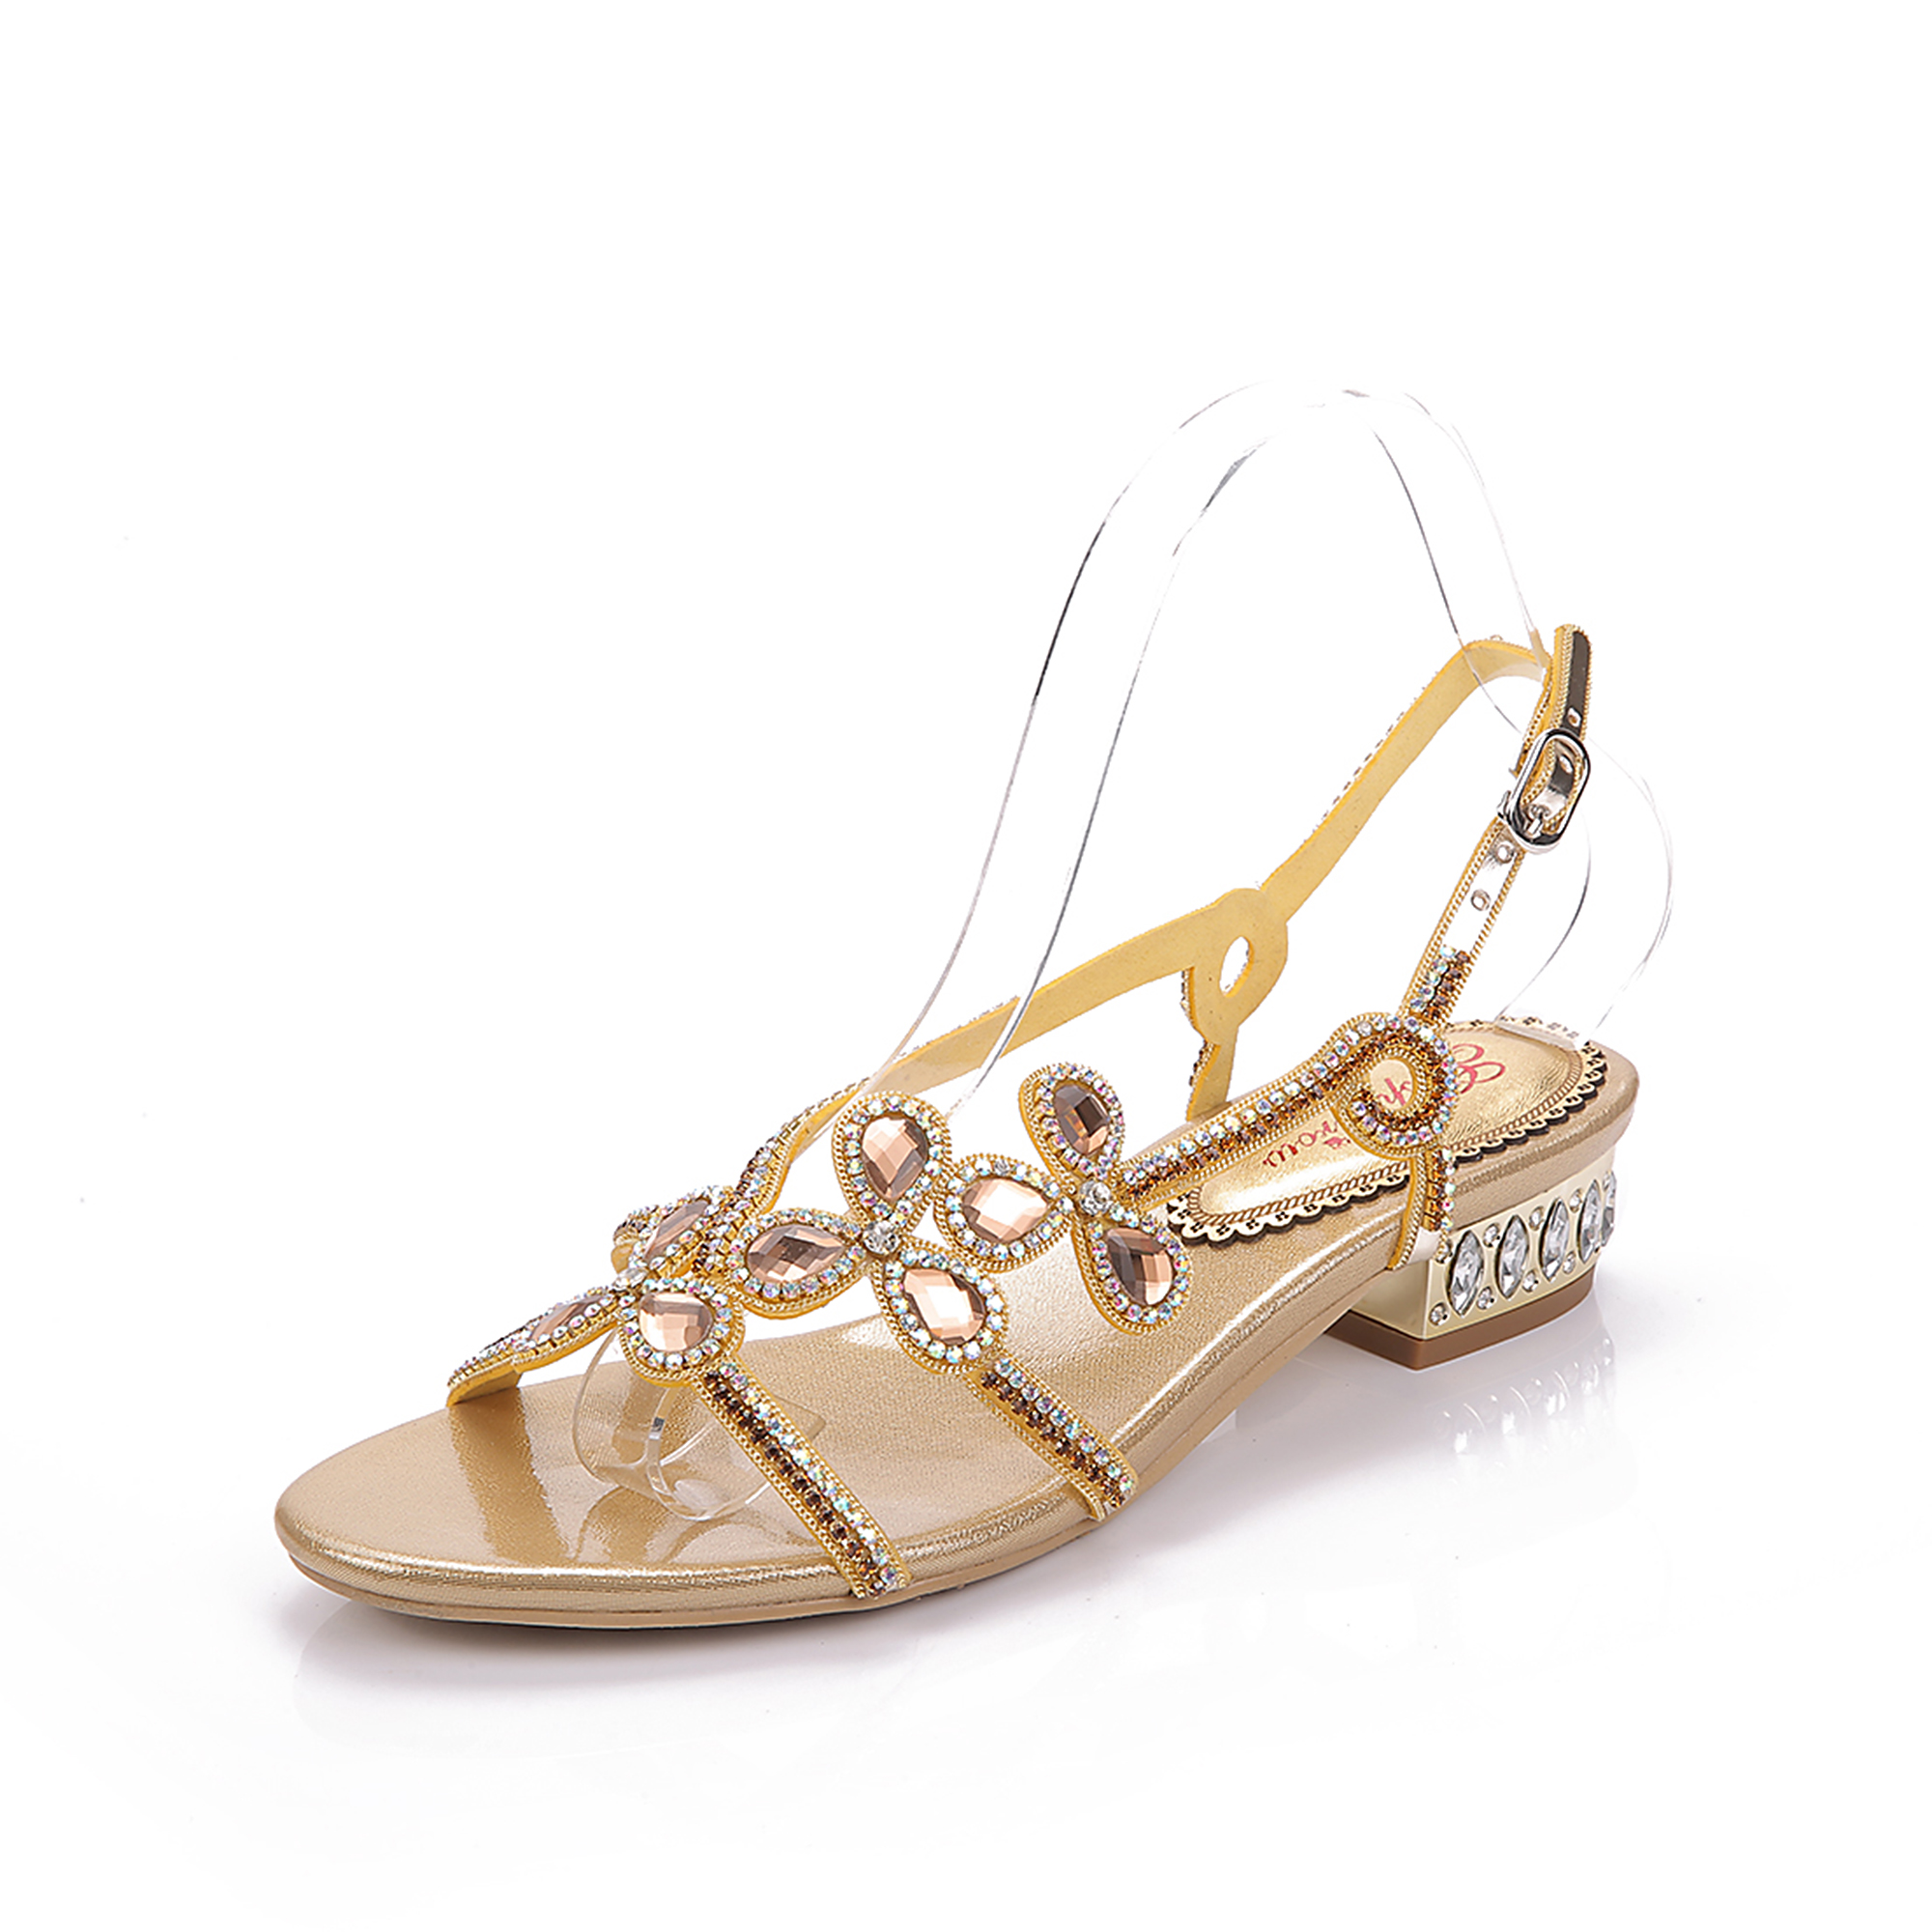 Gold Strappy Sandals Low Heel